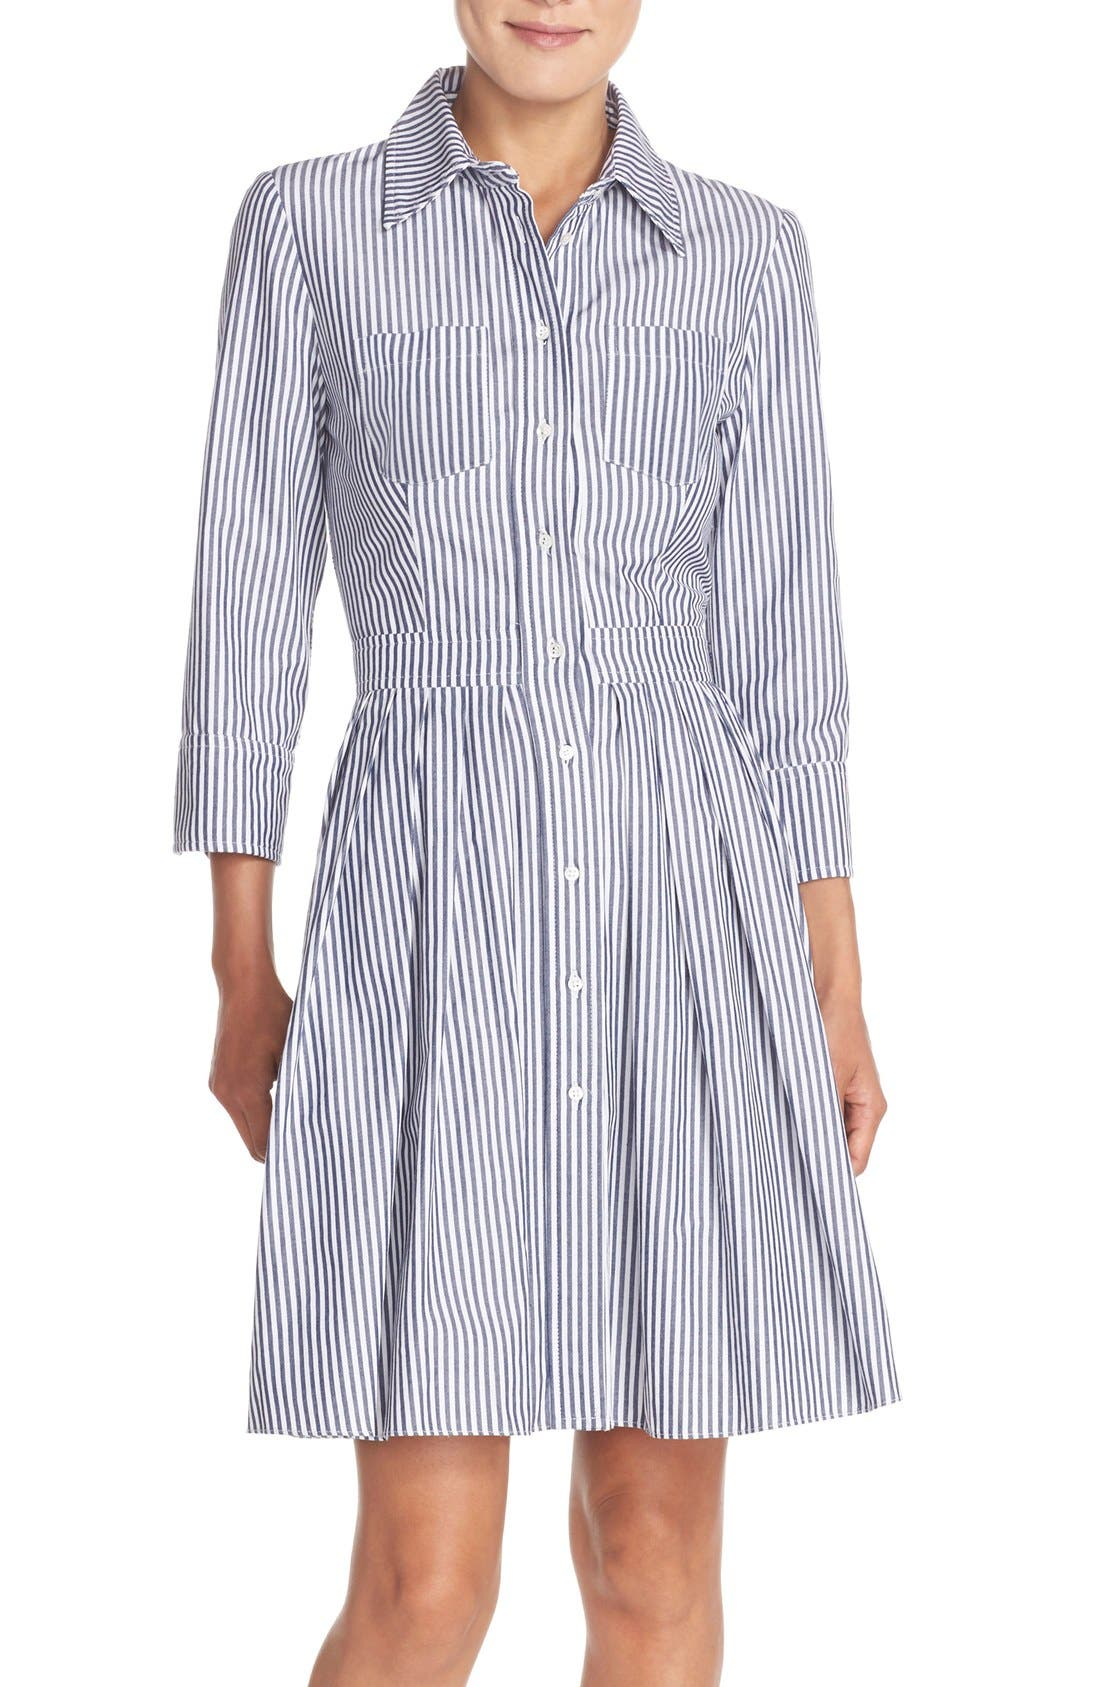 Main Image - Eliza J Stripe Cotton Shirtdress (Regular & Petite)